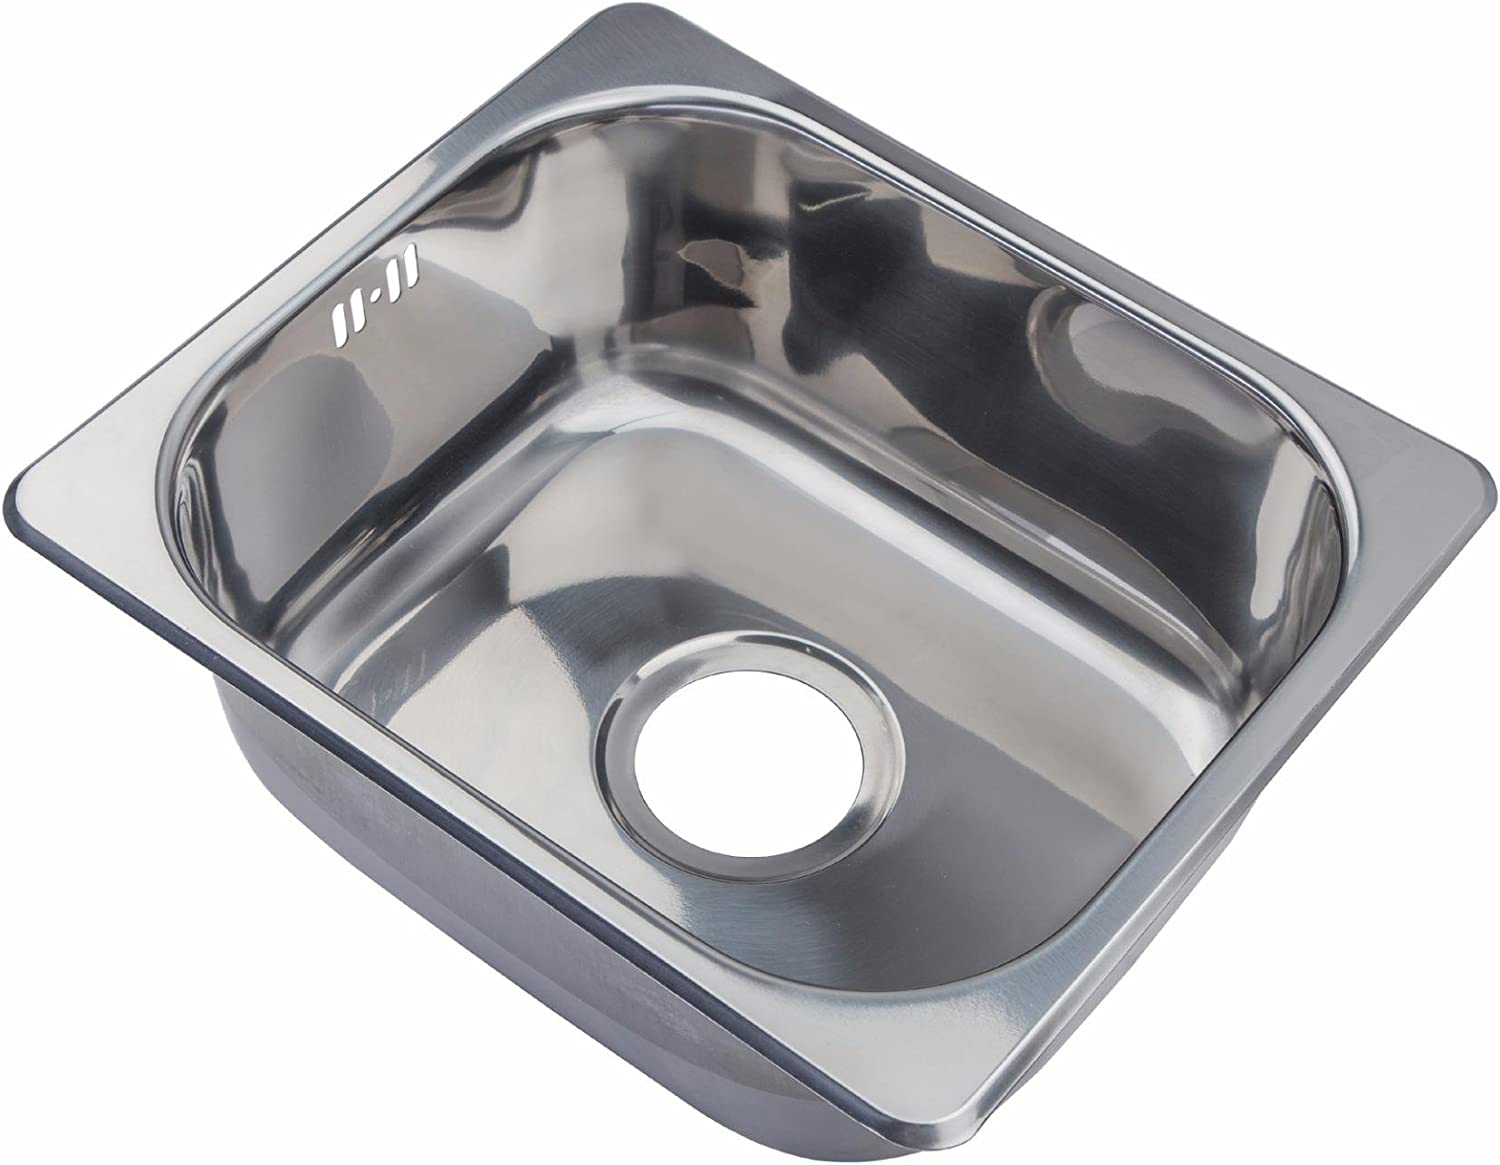 Grand Taps Small Steel Inset Single Bowl Kitchen Sink (A11 mr)